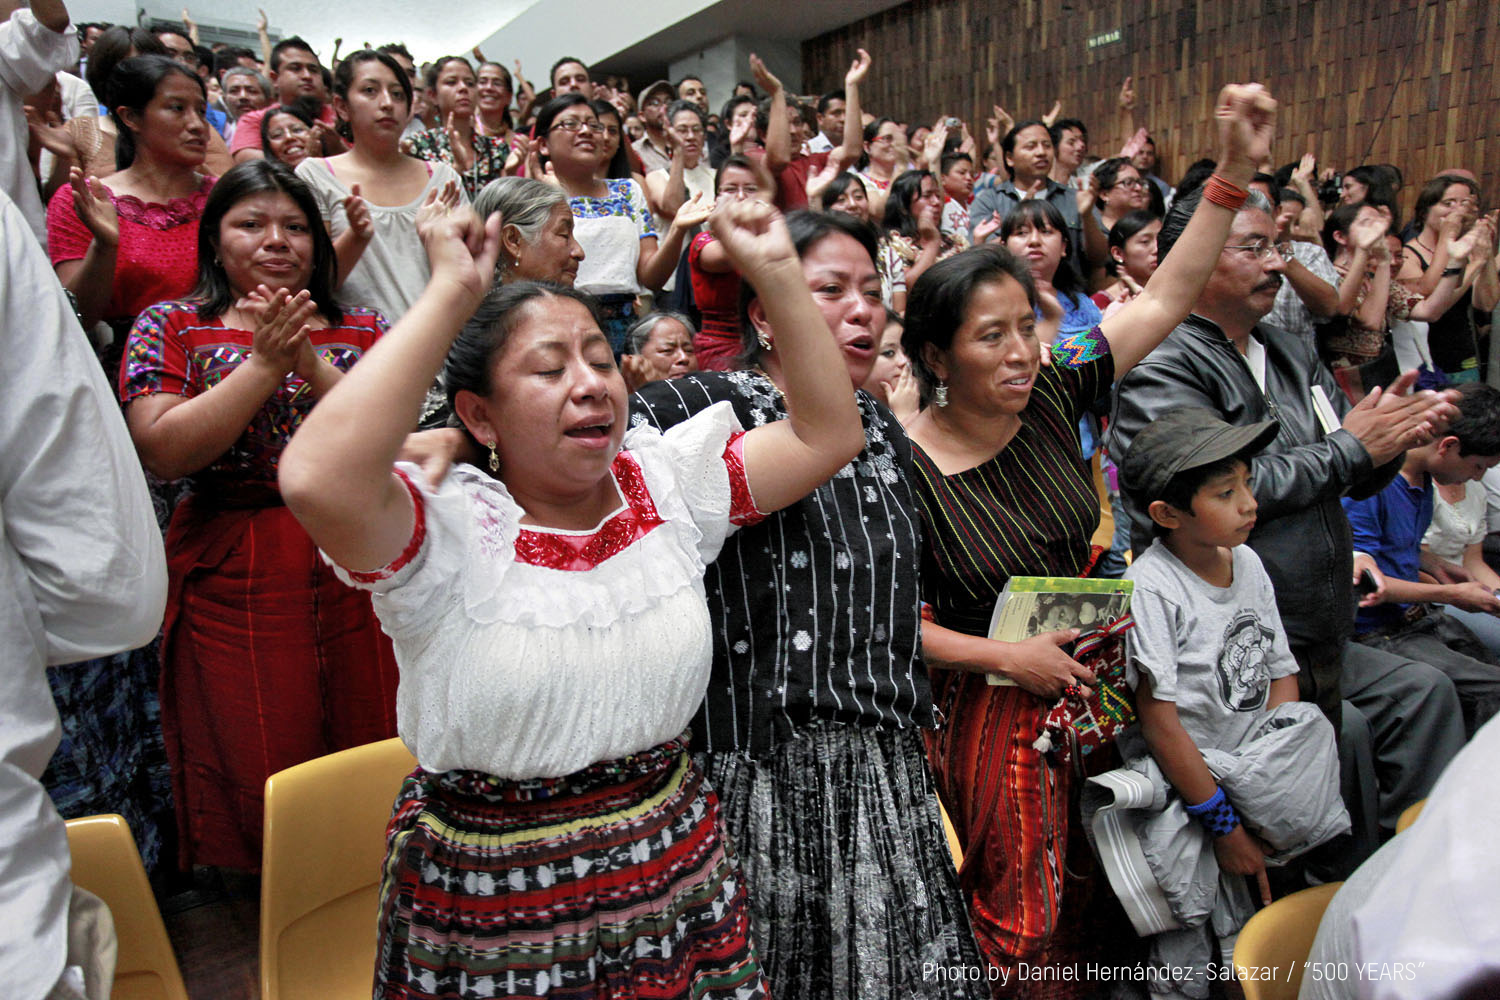 In  500 Years , Mayan survivors of the Guatemalan genocide cheer the guilty verdict against dictator Ríos Montt. He was convicted and sentenced for genocide and crimes against humanity on May 10, 2013, given an 80-year sentence and sent directly to prison. It was the first time the perpetrator of genocide against indigenous people had been tried in a court of law. Photo by Daniel Hernández Salazar.